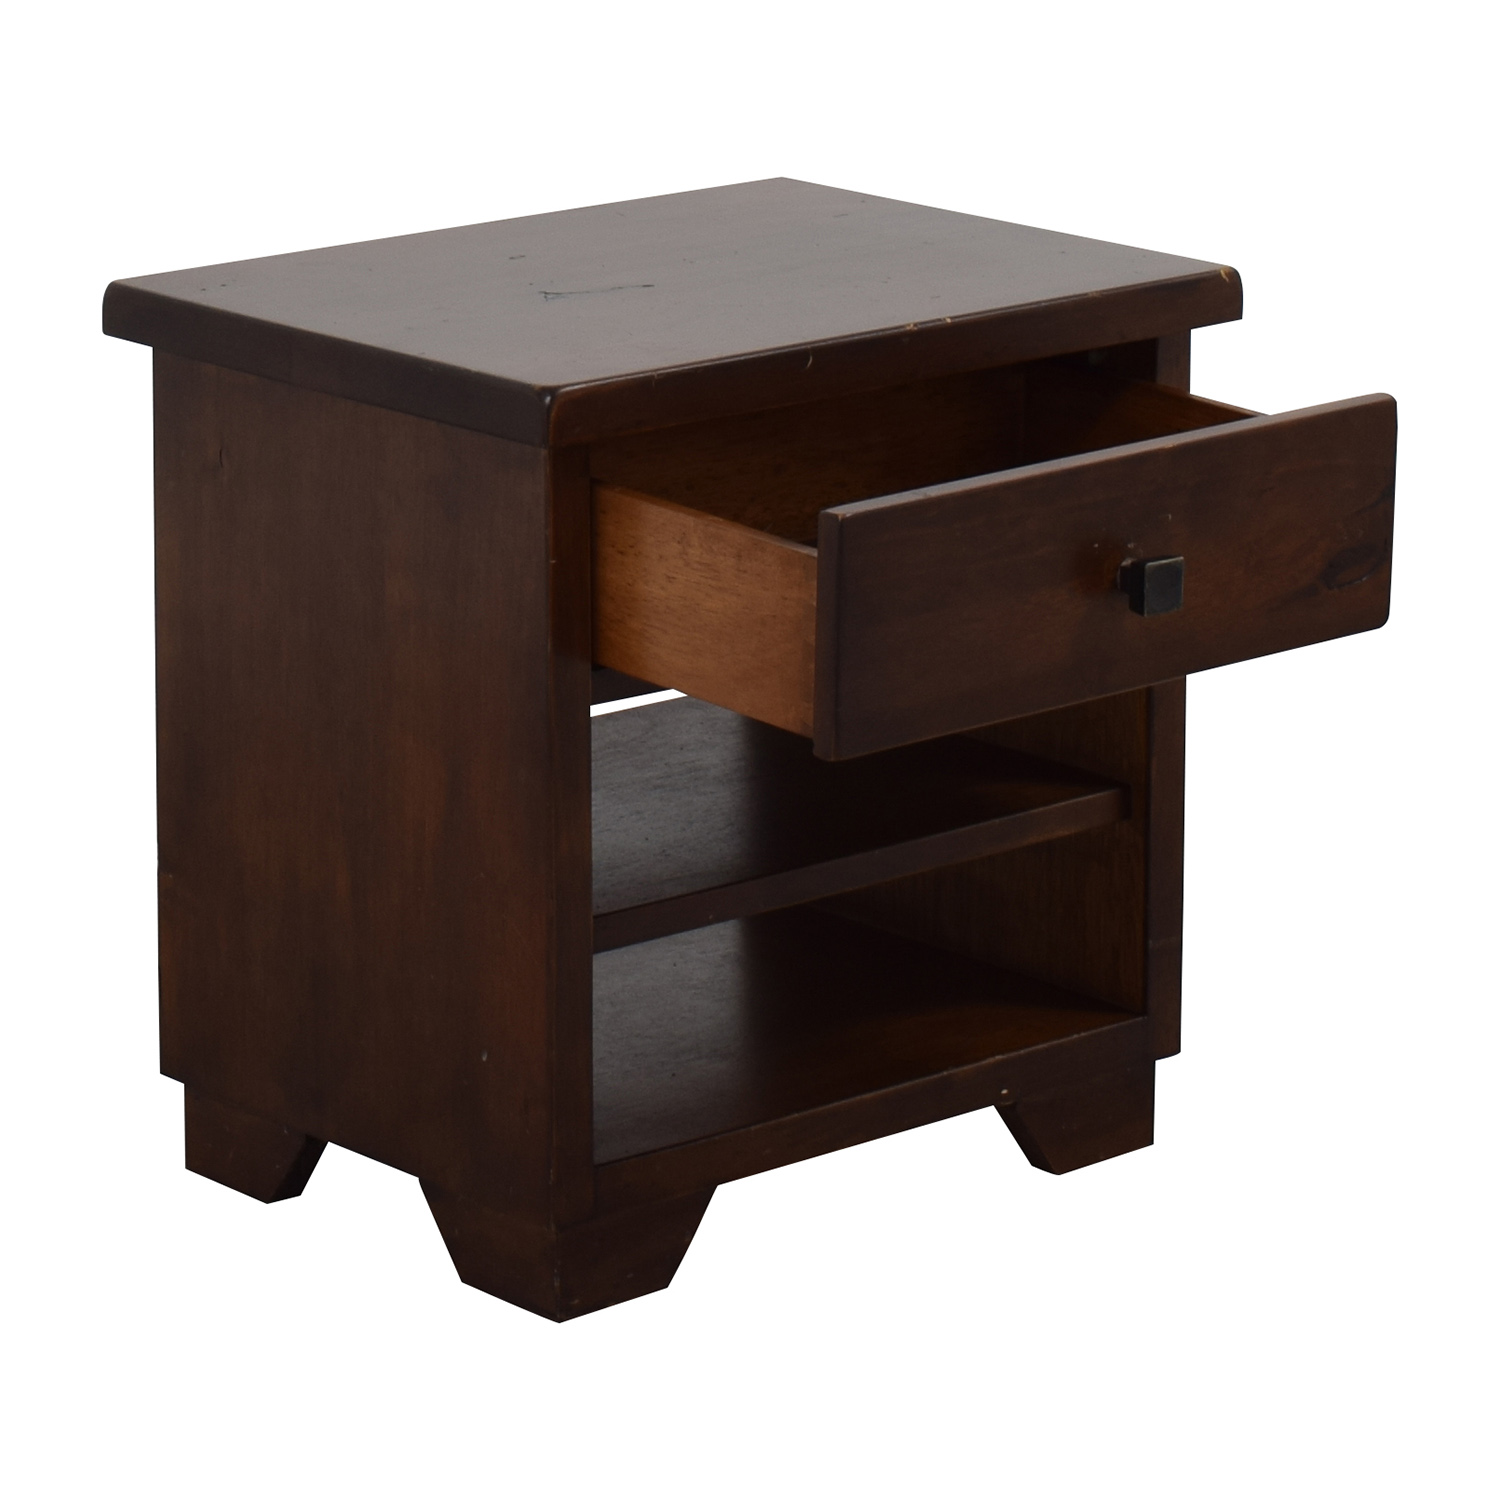 ... Pottery Barn Pottery Barn One-Drawer Bedside Table ...